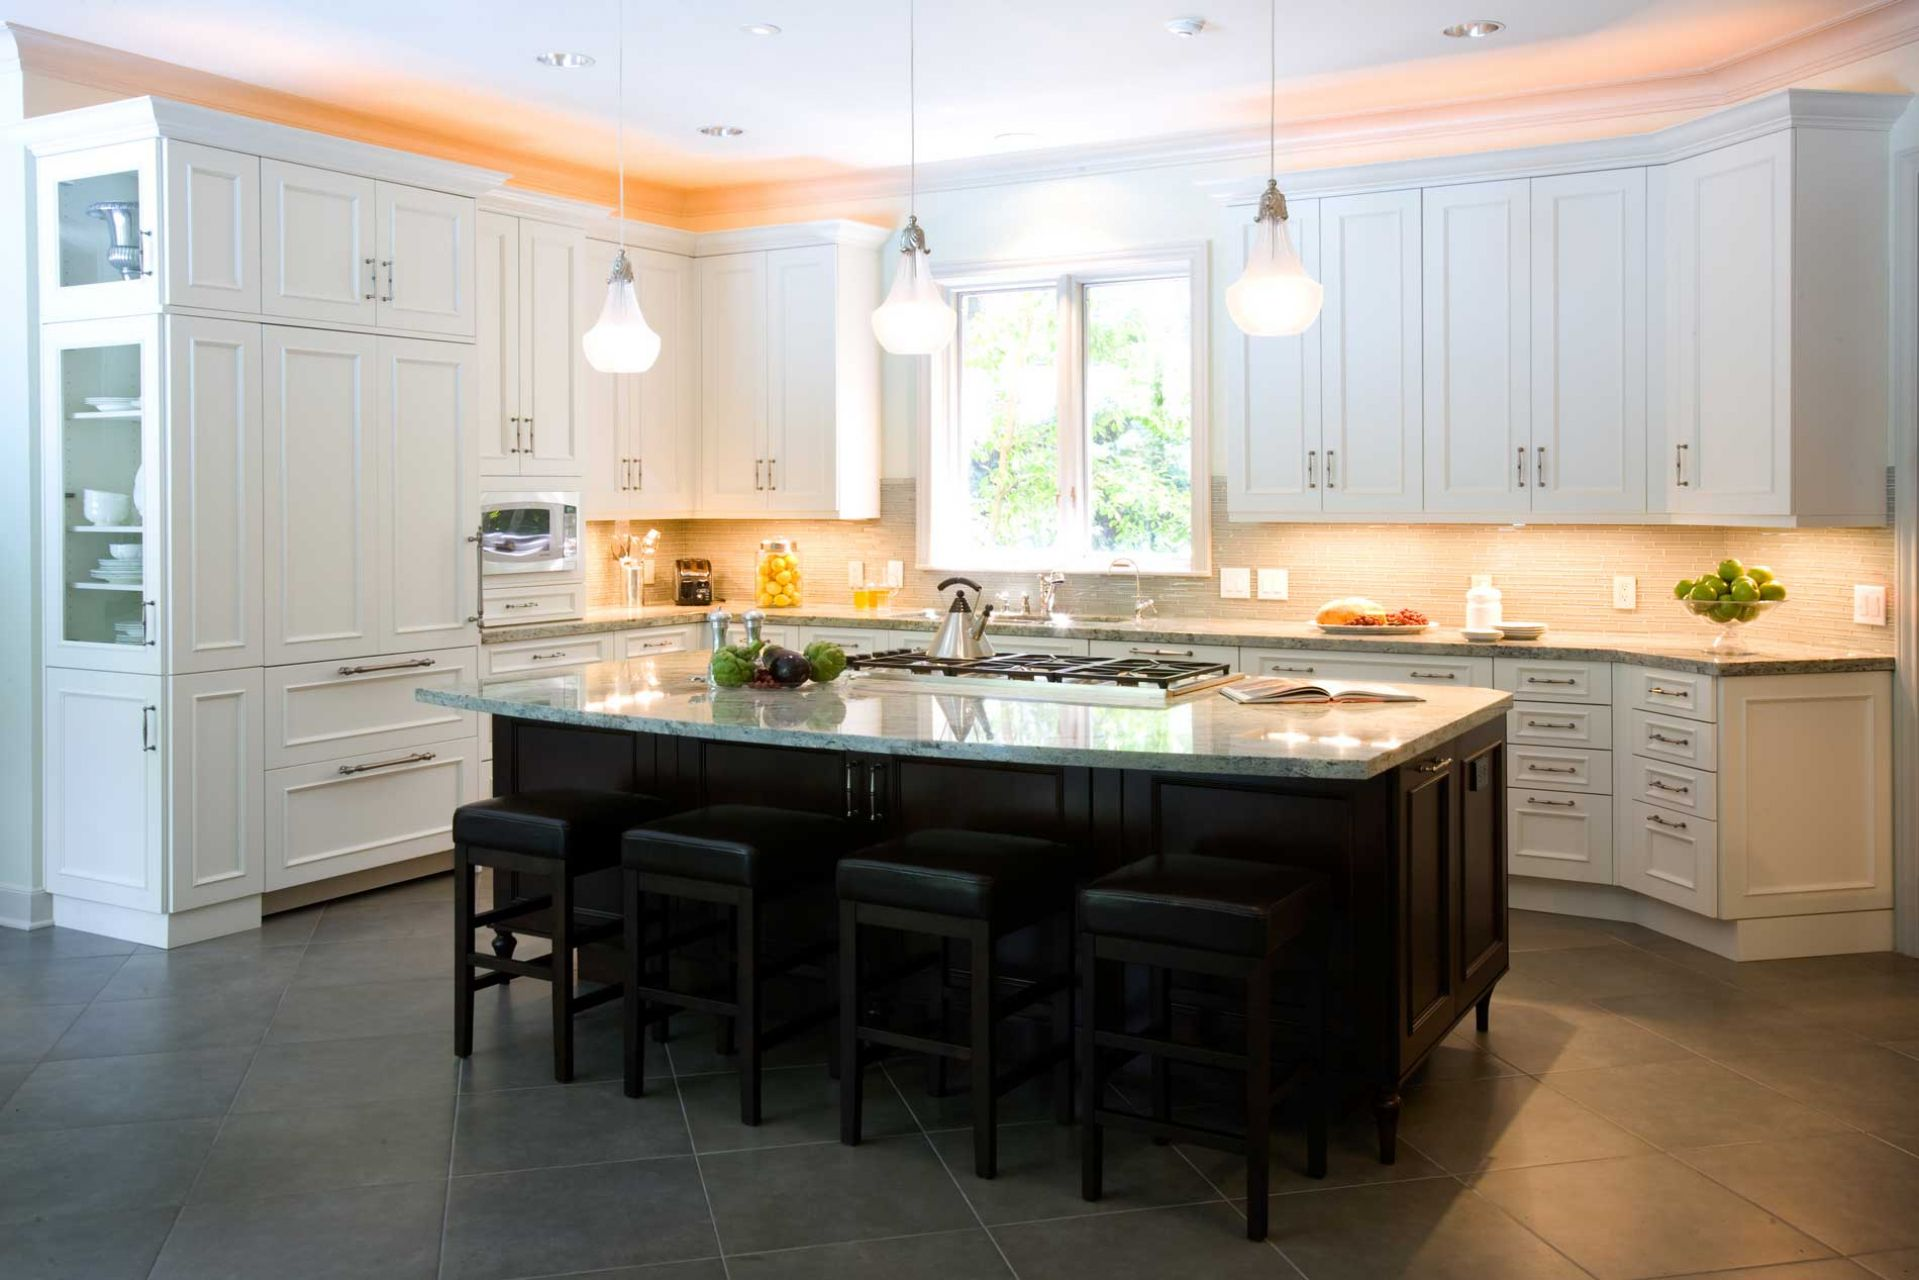 Good Consumers Kitchen And Bath Http://wuuzzz.com/consumers Kitchen And Bath 391 Ideas